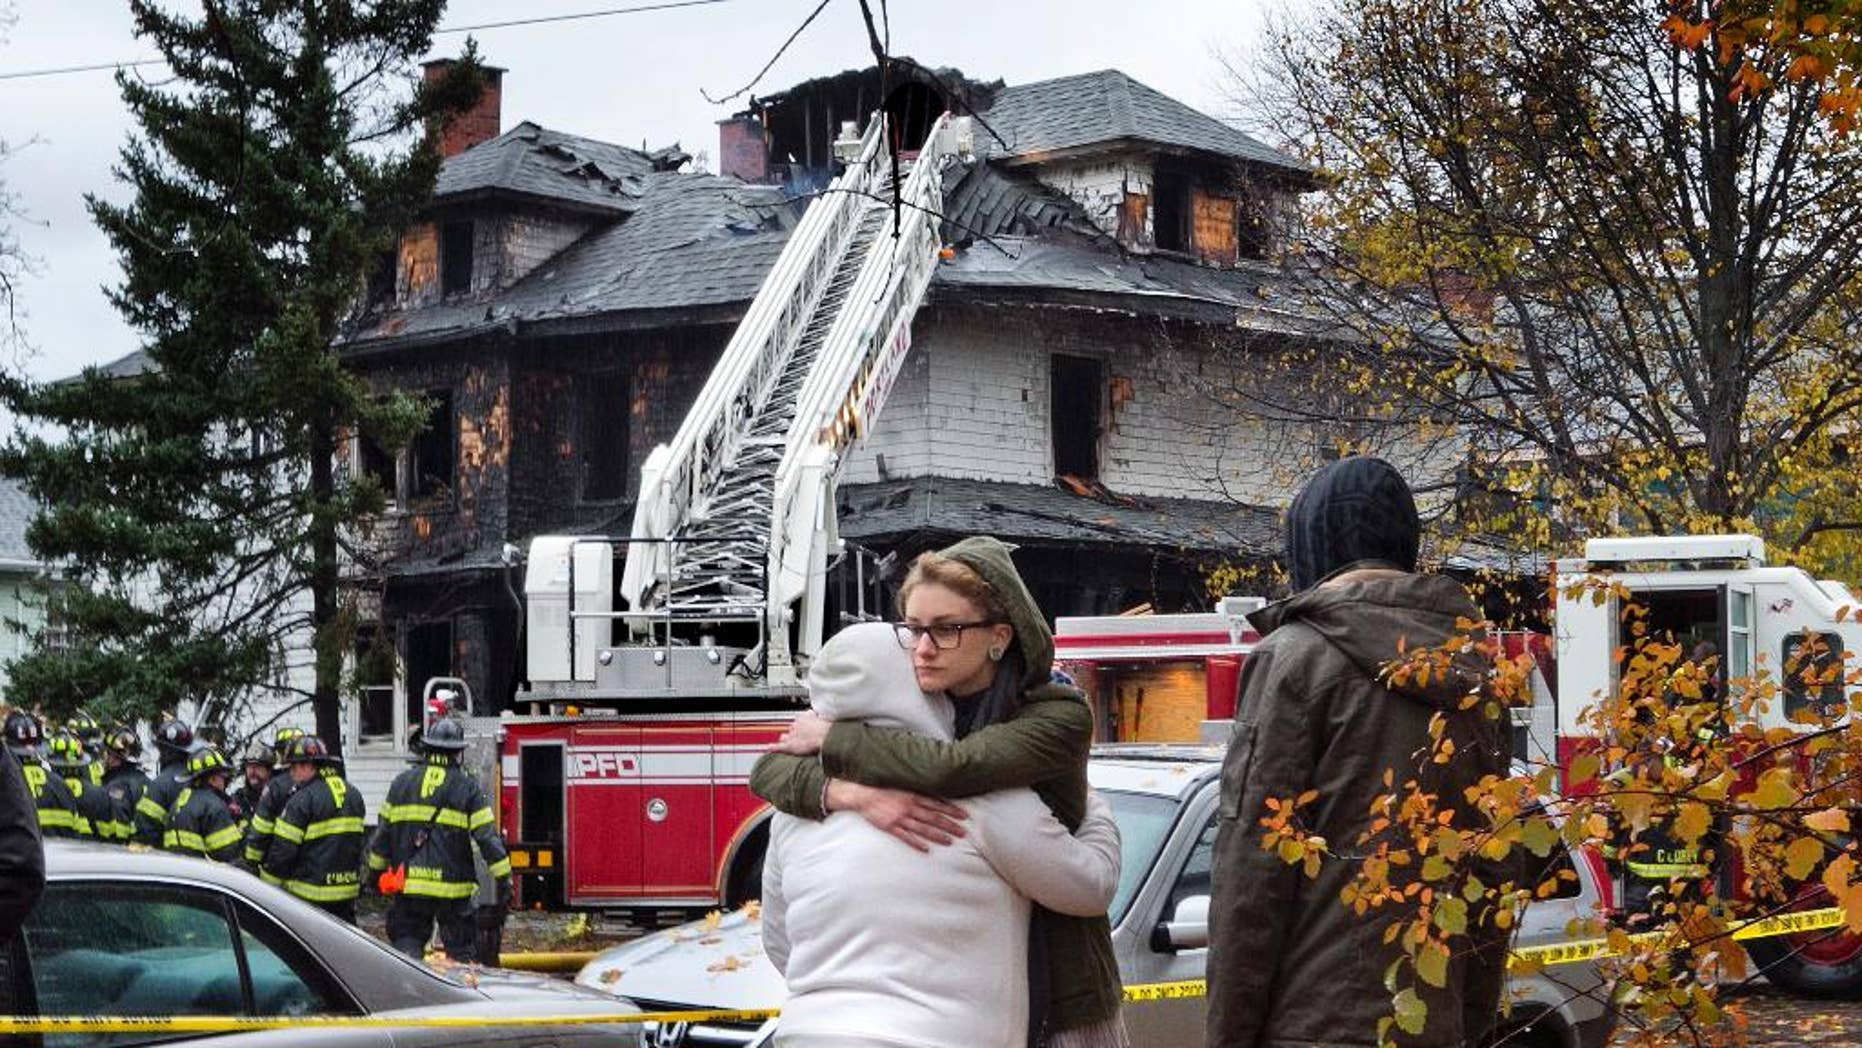 FILE - In this Nov. 1, 2014, file photo, friends of a victim of a fatal apartment building fire console one another other in Portland, Maine. The owner of an apartment house where six people died in a fire that started hours after a Halloween party has been indicted on six counts of manslaughter, authorities announced on Friday, July 10, 2015. (AP Photo/Robert F. Bukaty, File)